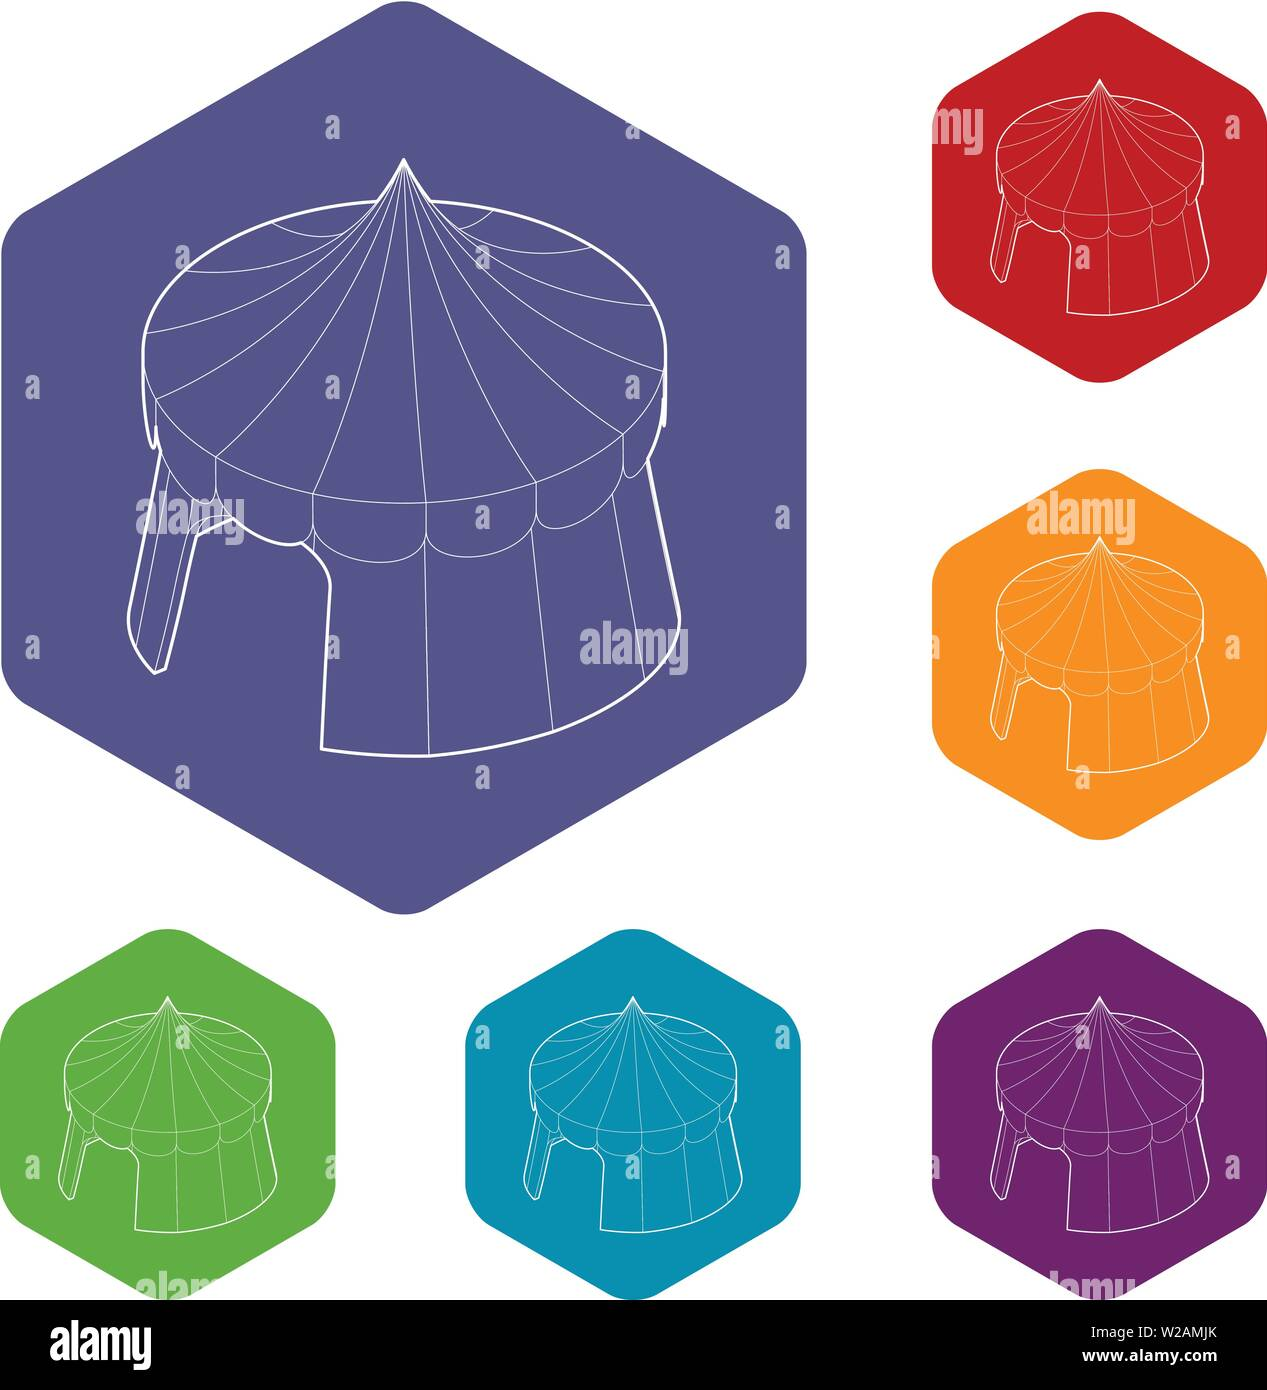 Circus tent icons vector hexahedron - Stock Image